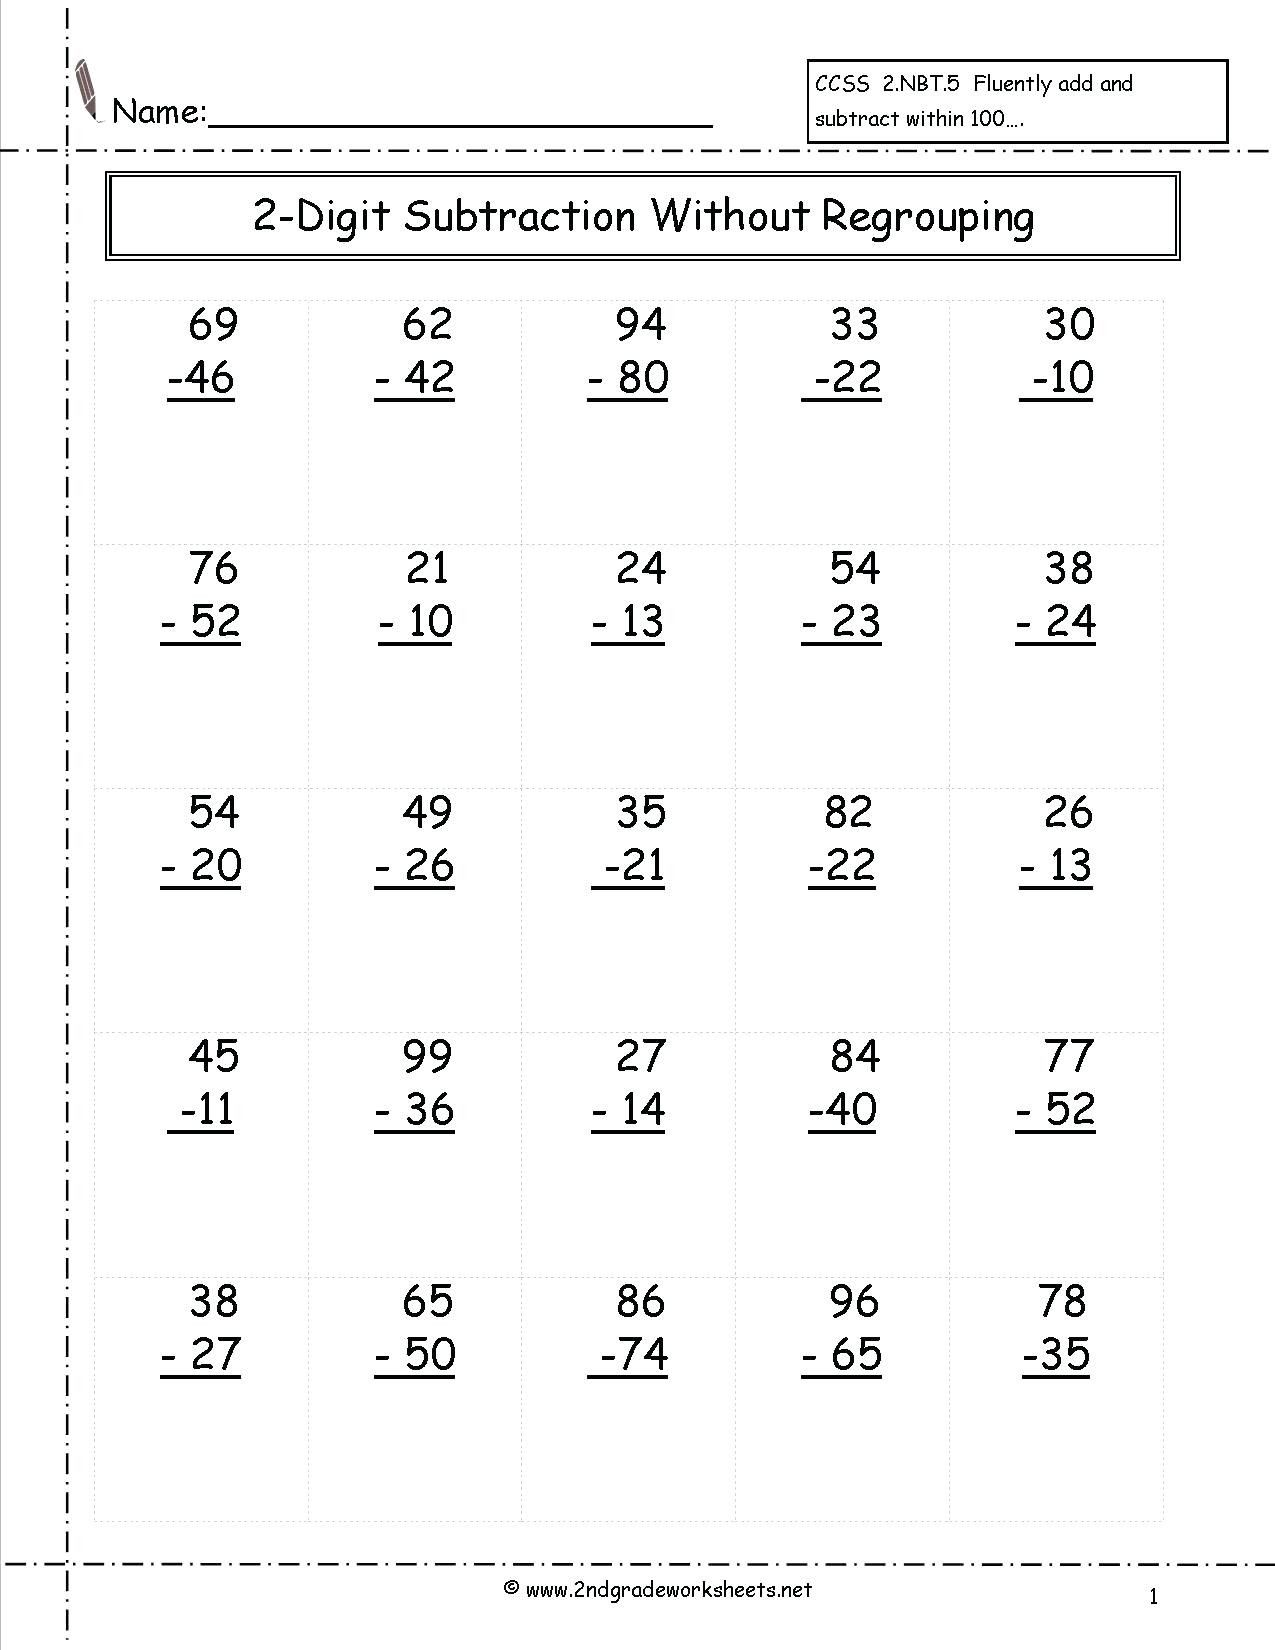 9 Subtraction Worksheets for Grade 1 - Free Templates [ 1650 x 1275 Pixel ]